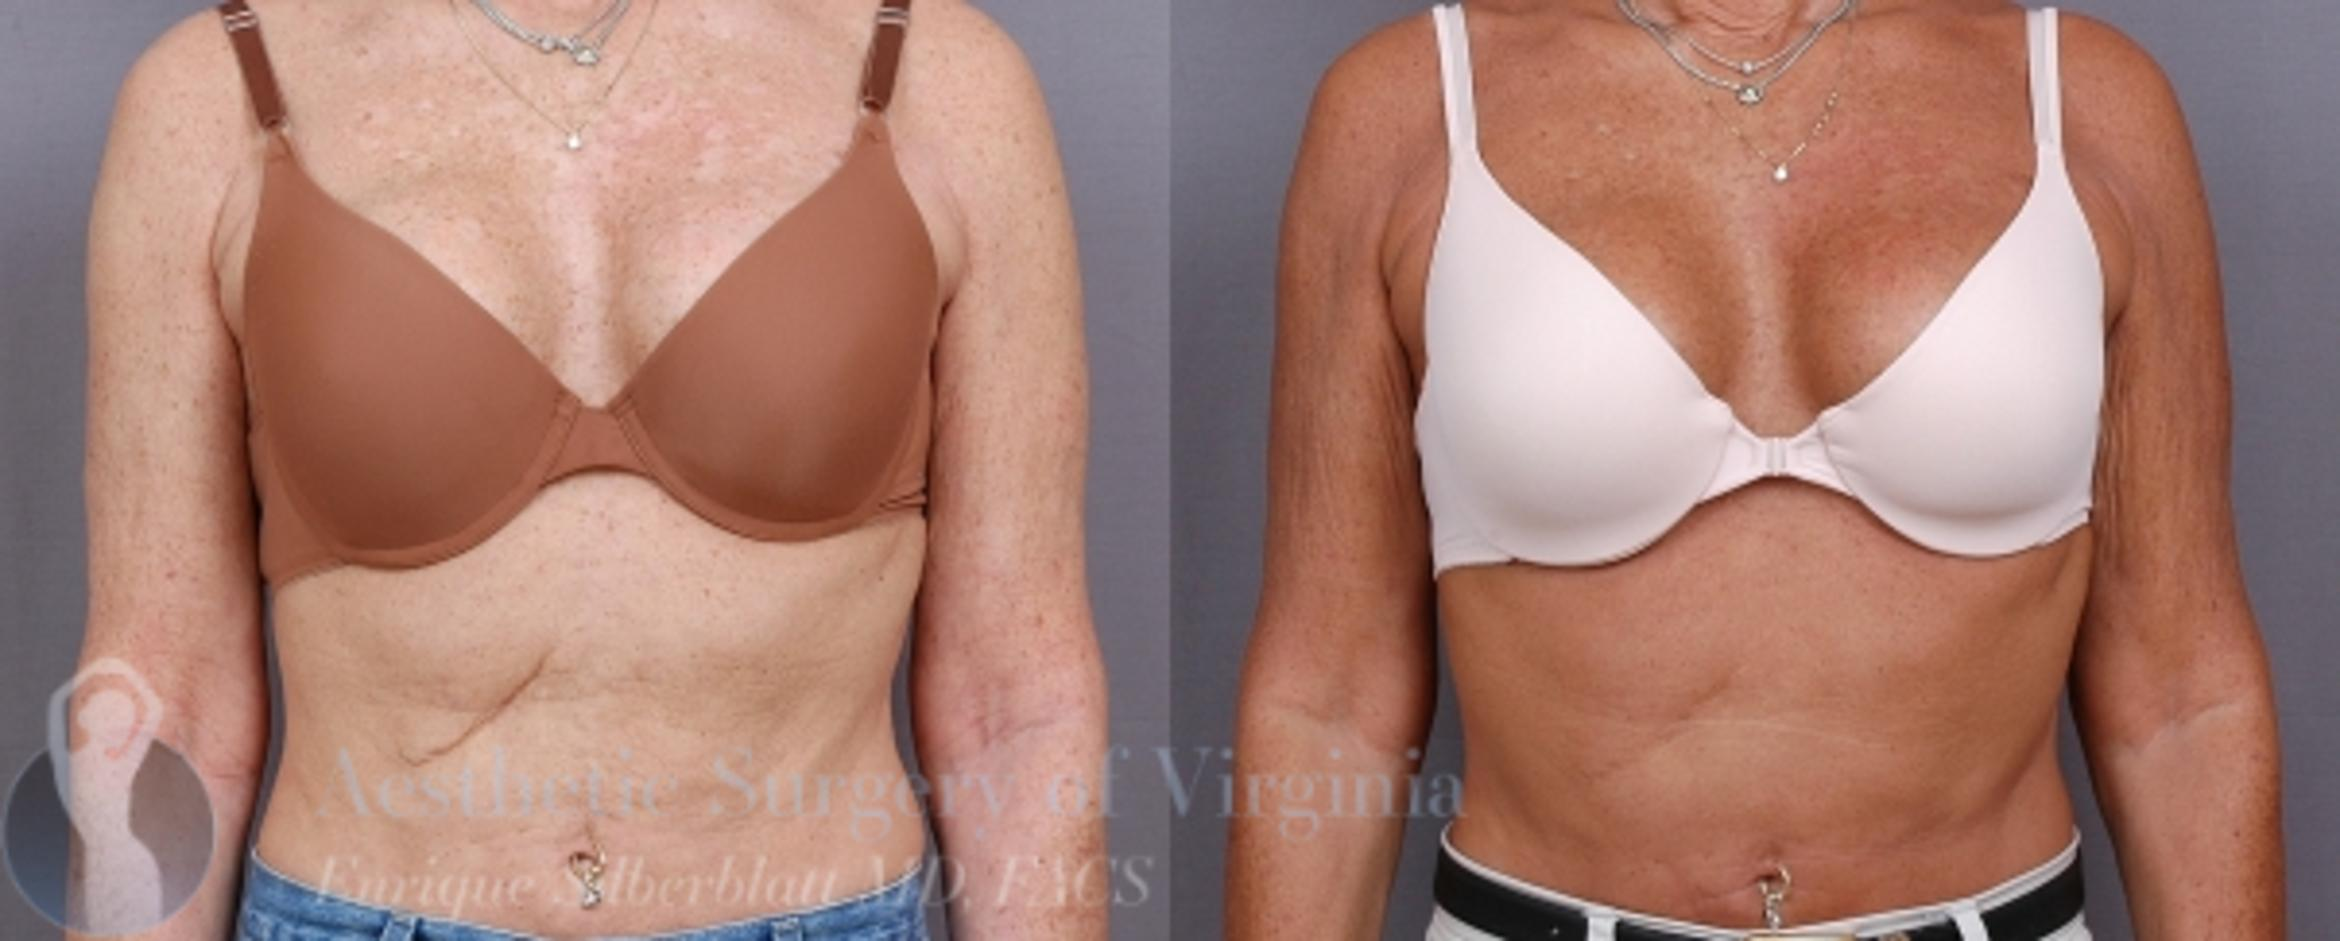 Arm Lift Surgery Case 32 Before & After View #2 | Roanoke, VA | Aesthetic Surgery of Virginia: Enrique Silberblatt, MD